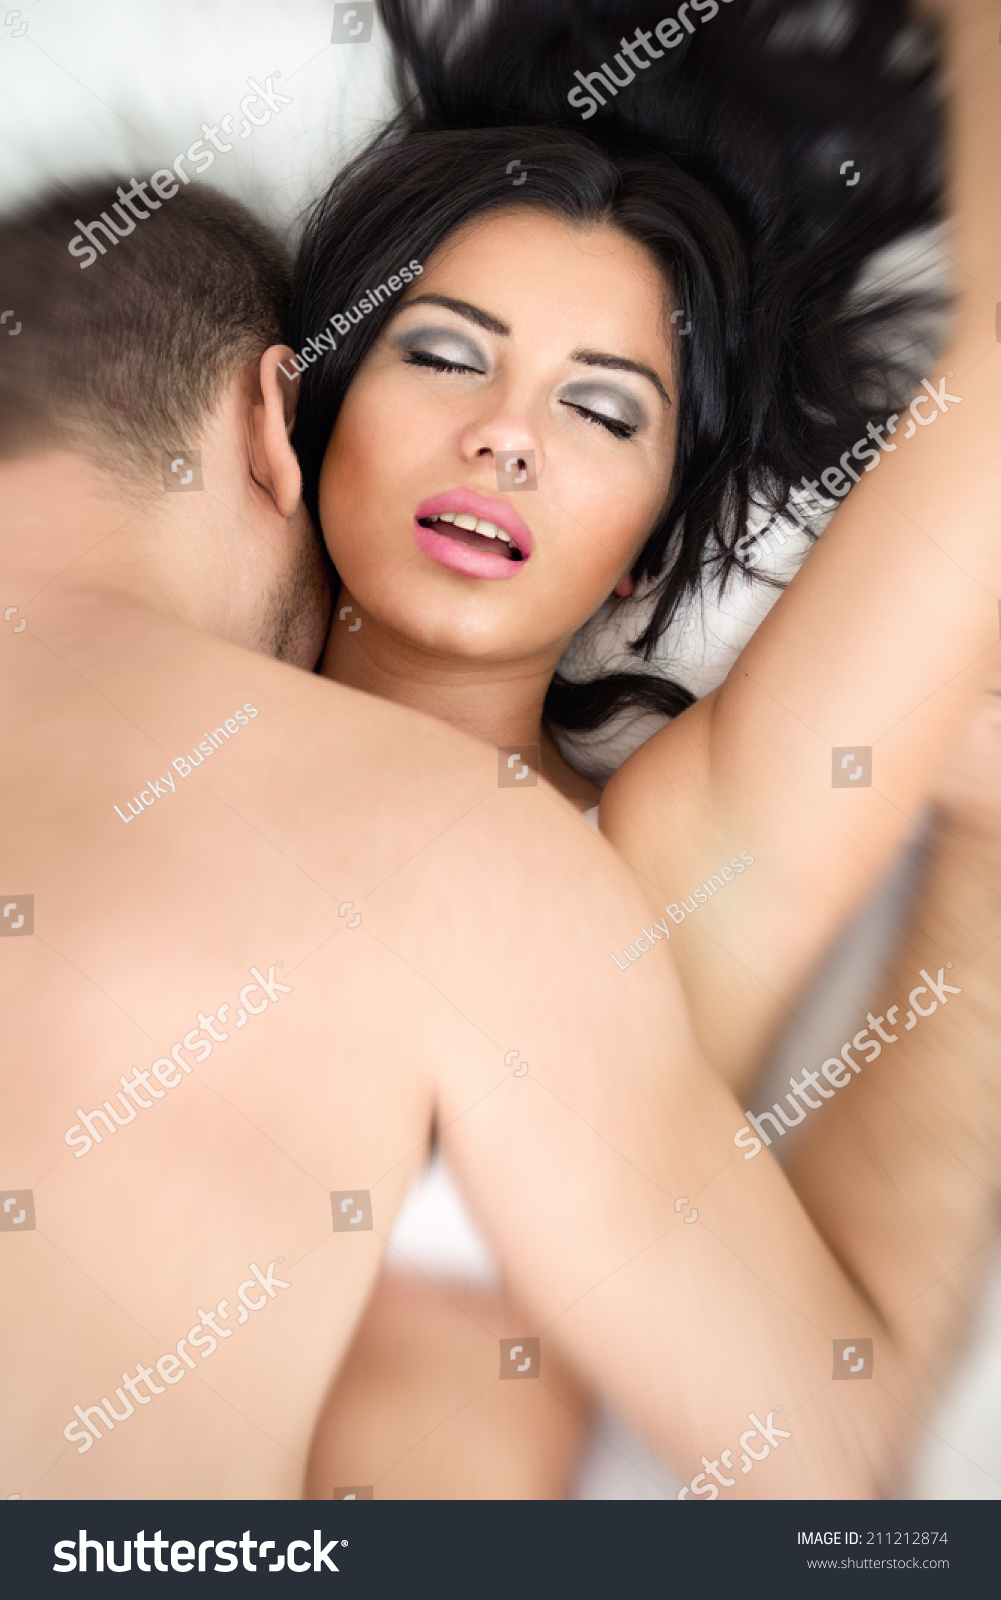 men having sex with girls kissing